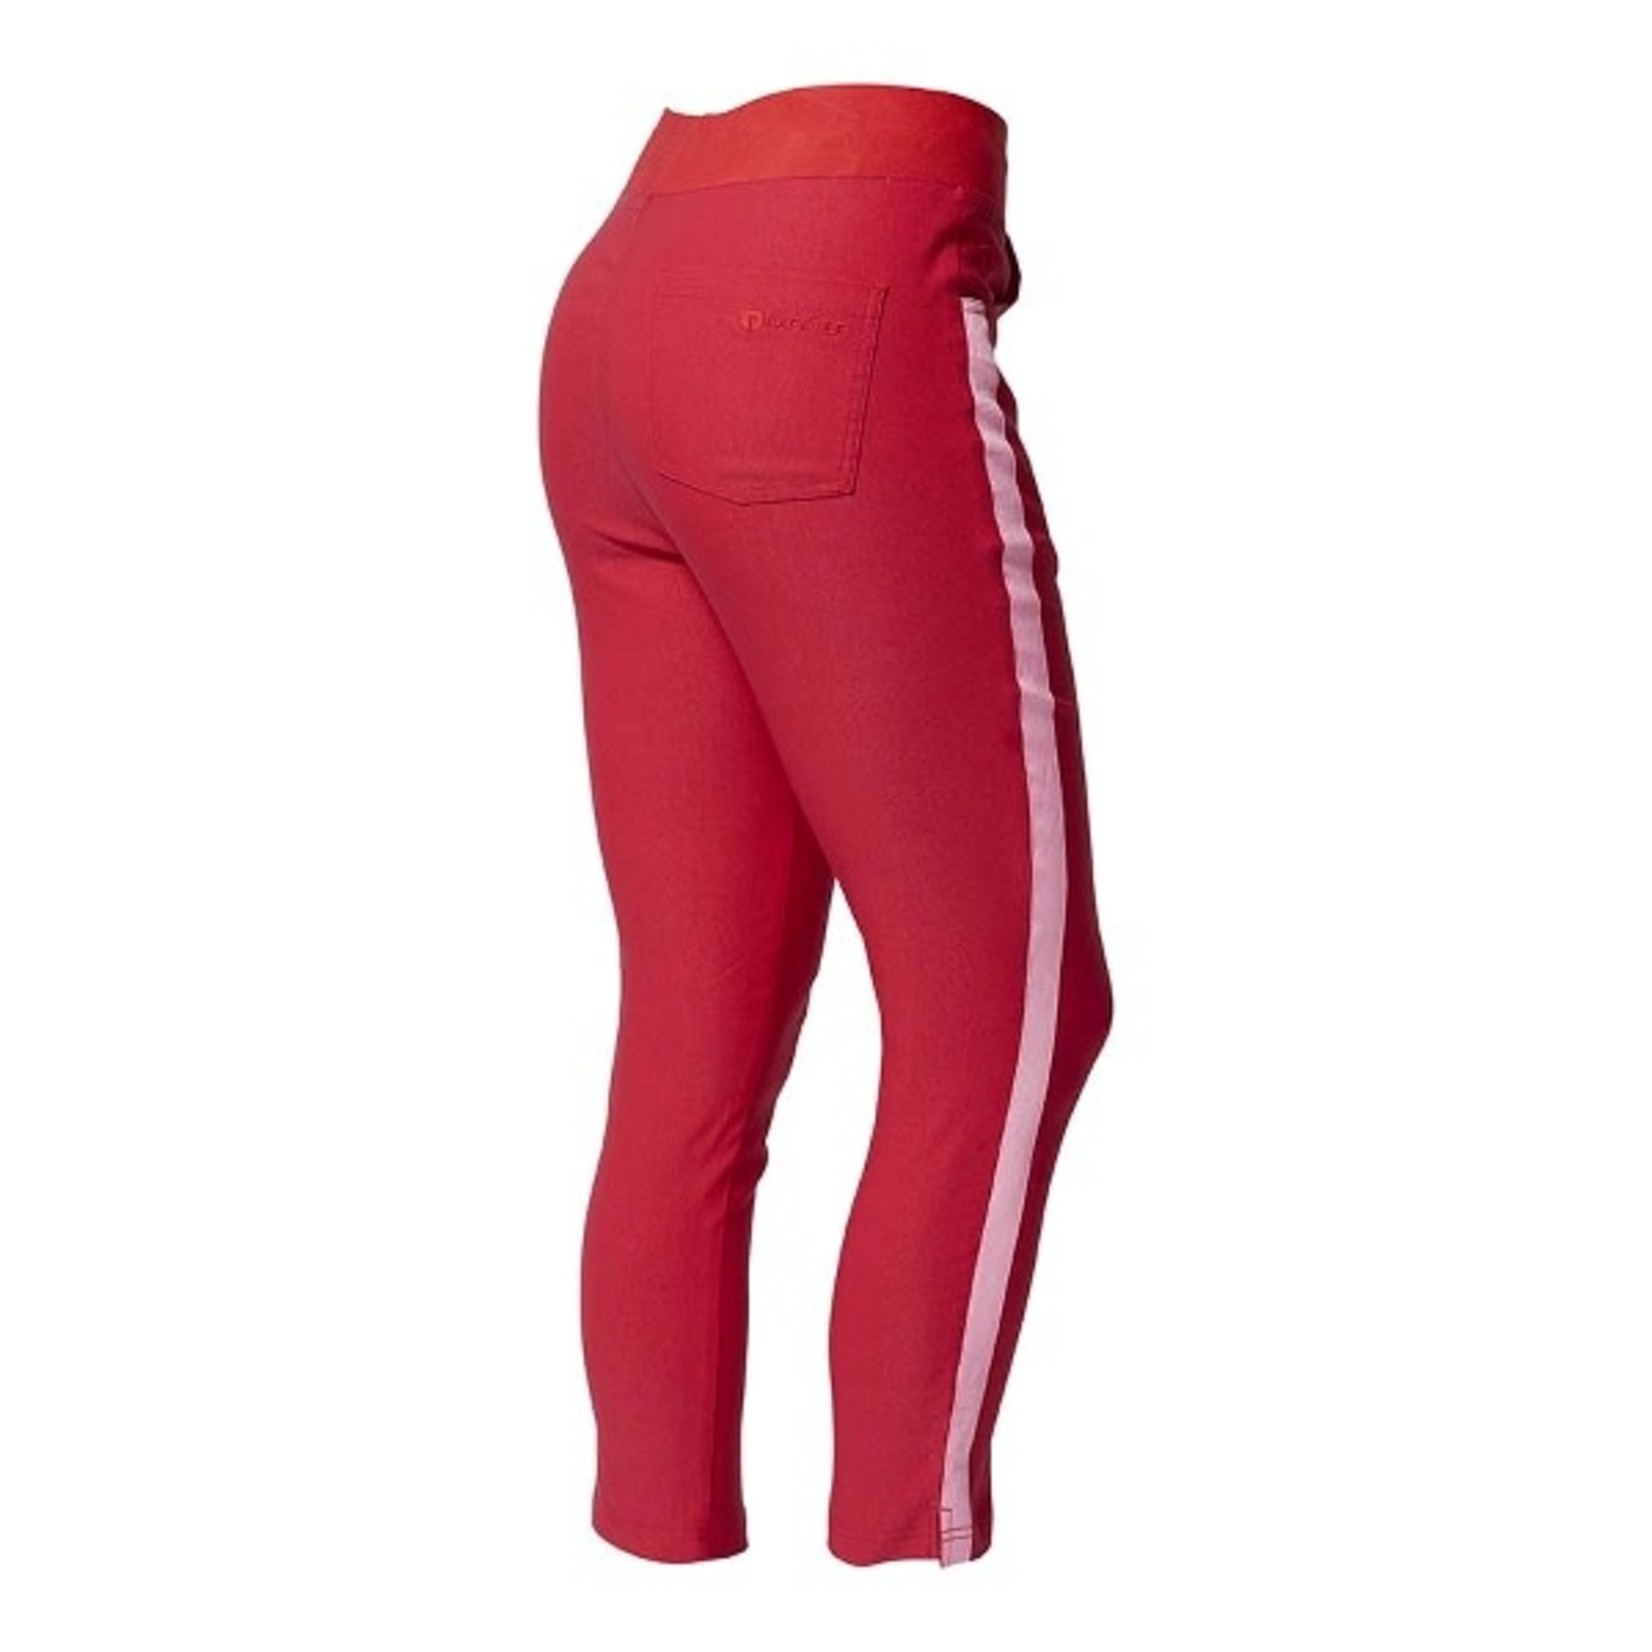 Backtee Backtee Ladies Contrast Striped Trousers